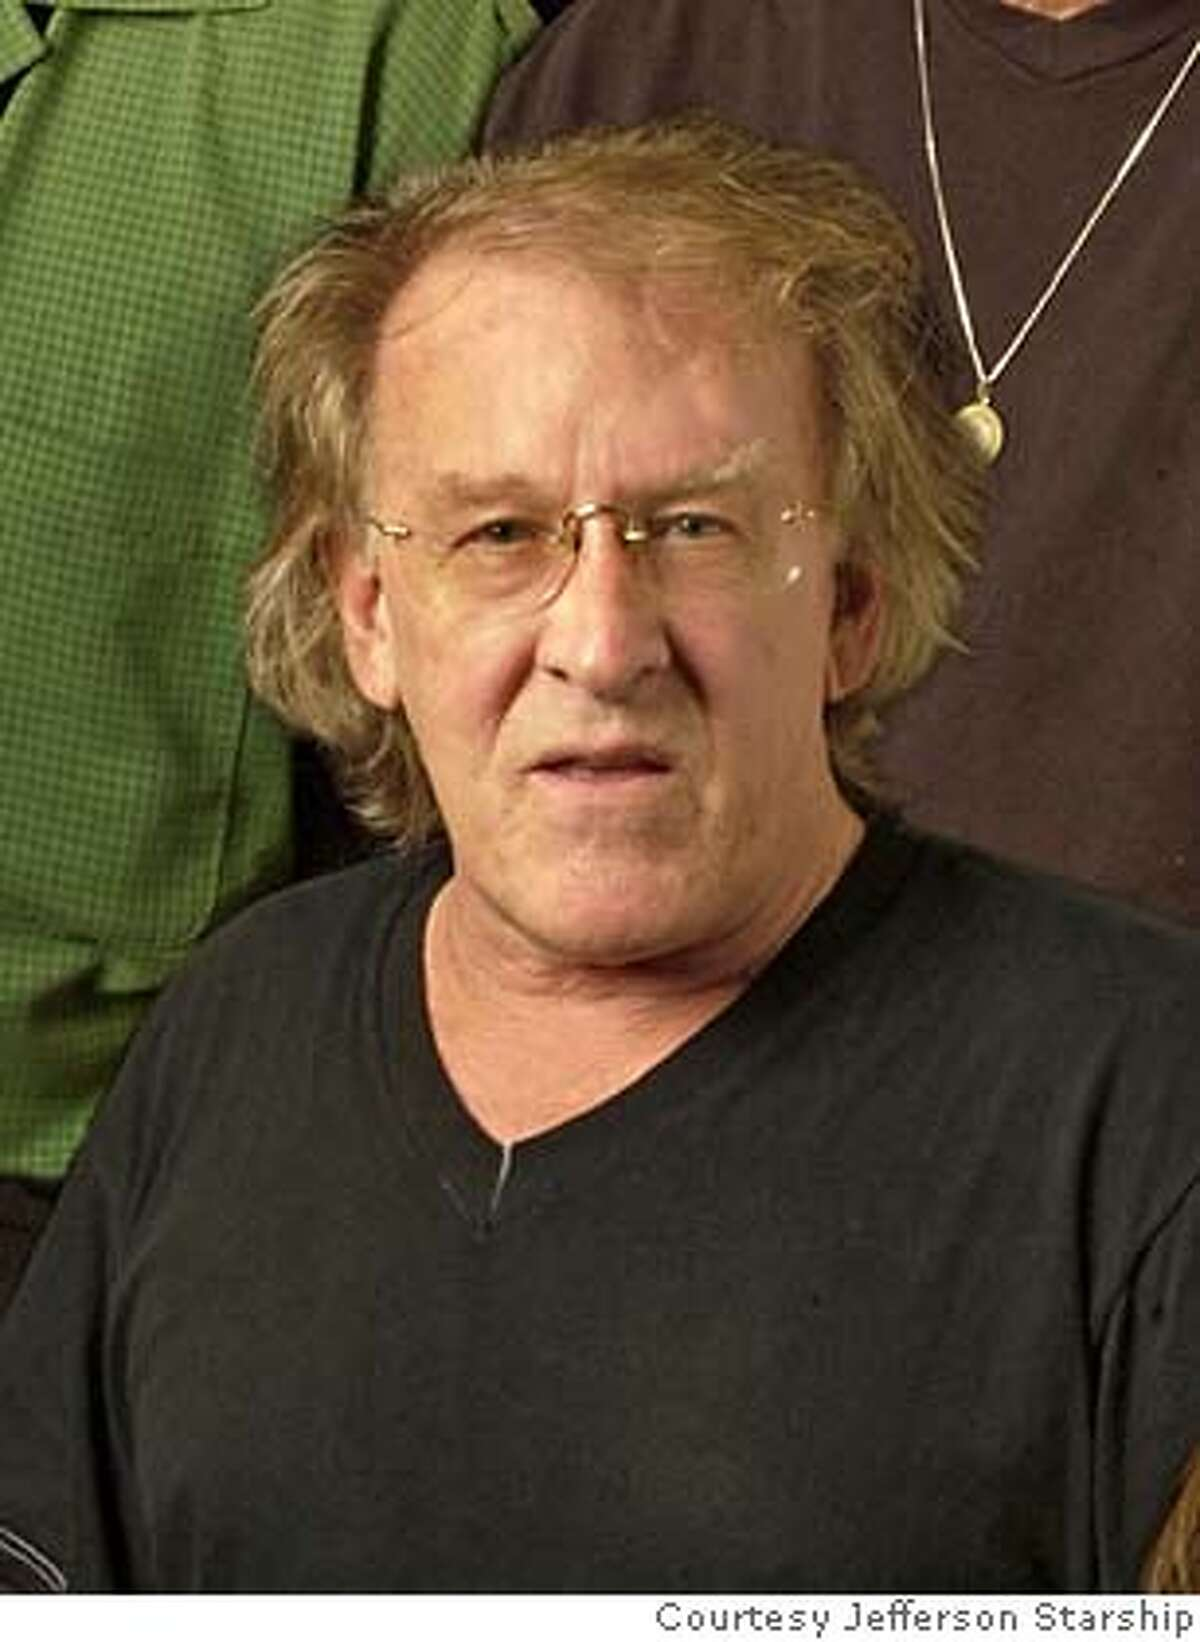 ###Live Caption:Paul Kantner (Jefferson Starship) .###Caption History:Paul Kantner (Jefferson Starship) 2 Aidin Vaziri. Credit: Courtesy Jefferson Starship Ran on: 02-07-2007 Jefferson Starship will play at Justin Herman Plaza at noon in a free show to promote Microsofts new Vista operating system. Ran on: 07-27-2007 Eddie Izzard will workshop his solo show Work in Progress in two performances, Aug. 5-6.###Notes:###Special Instructions: